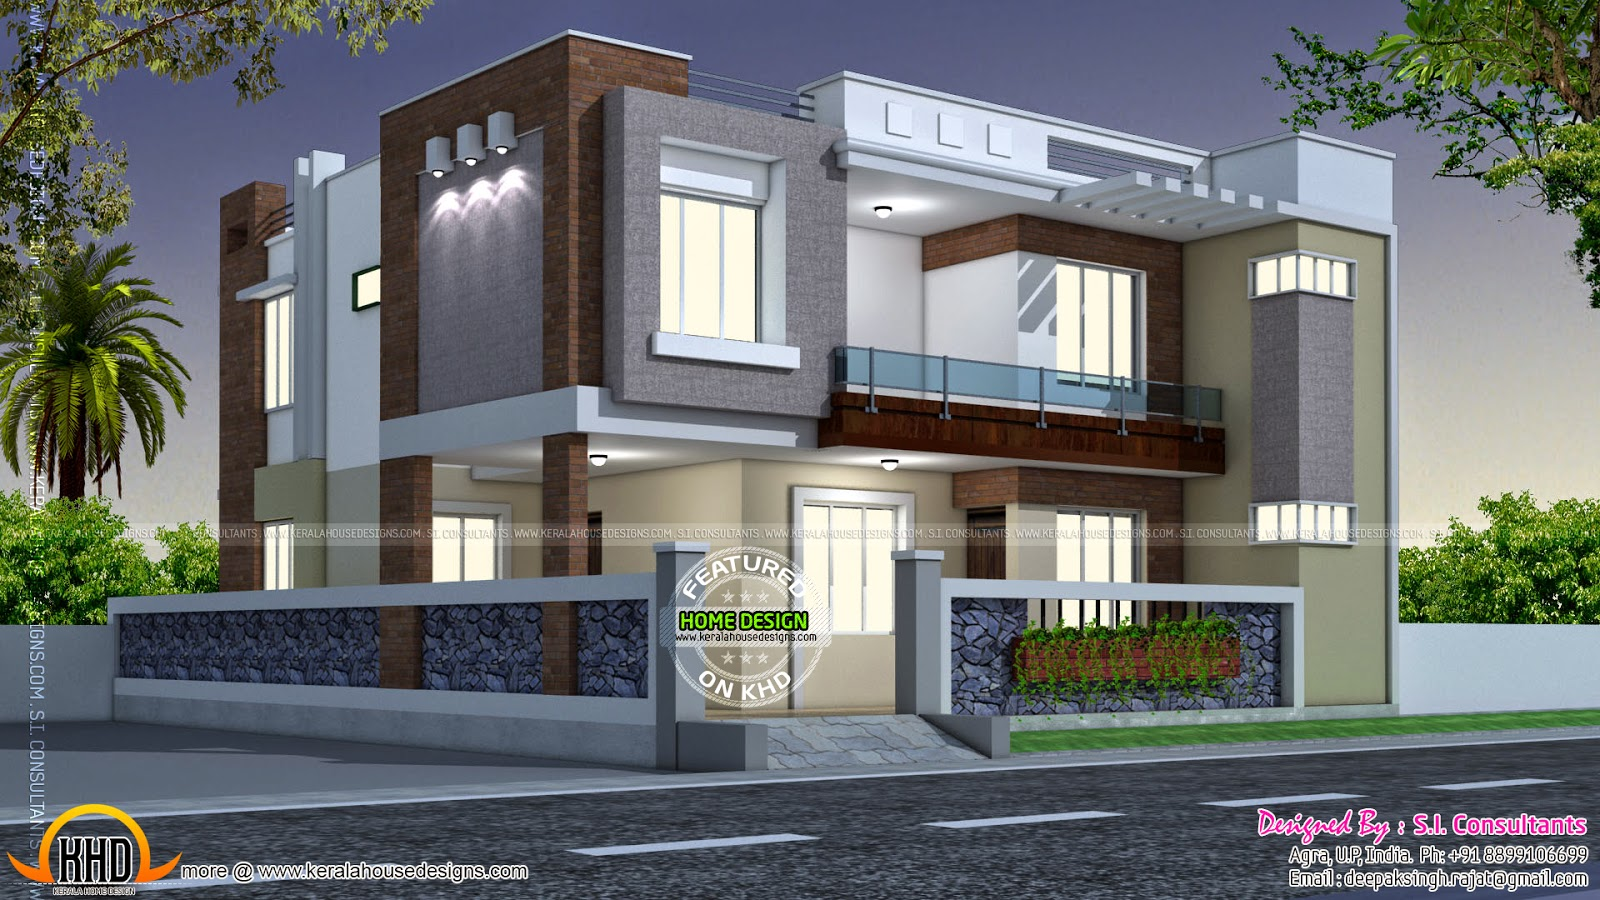 House plans and design modern house plans for india for House plans india free